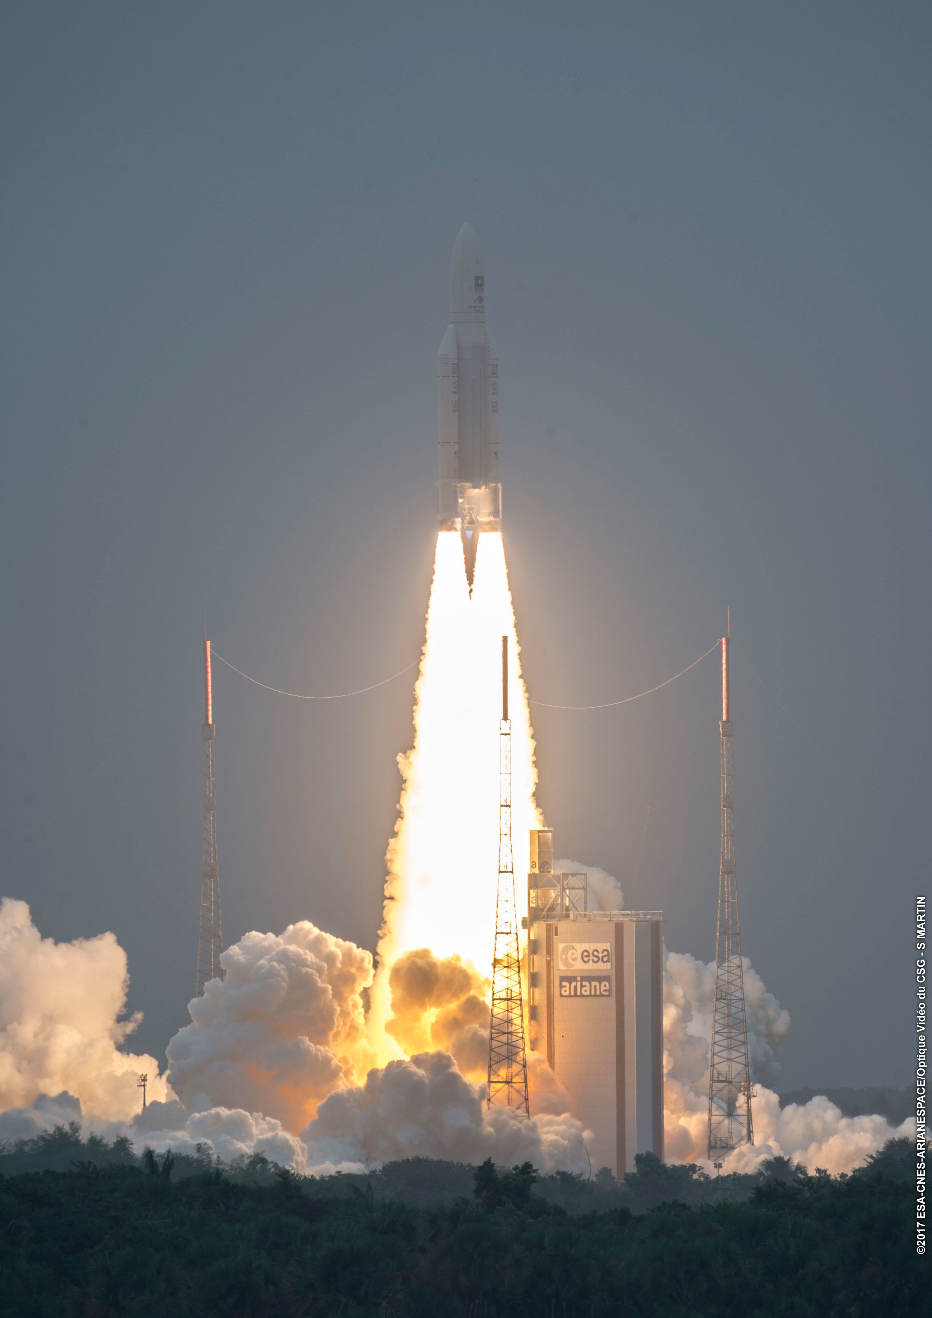 ArianeGroup orders final batch of Ariane 5 launchers